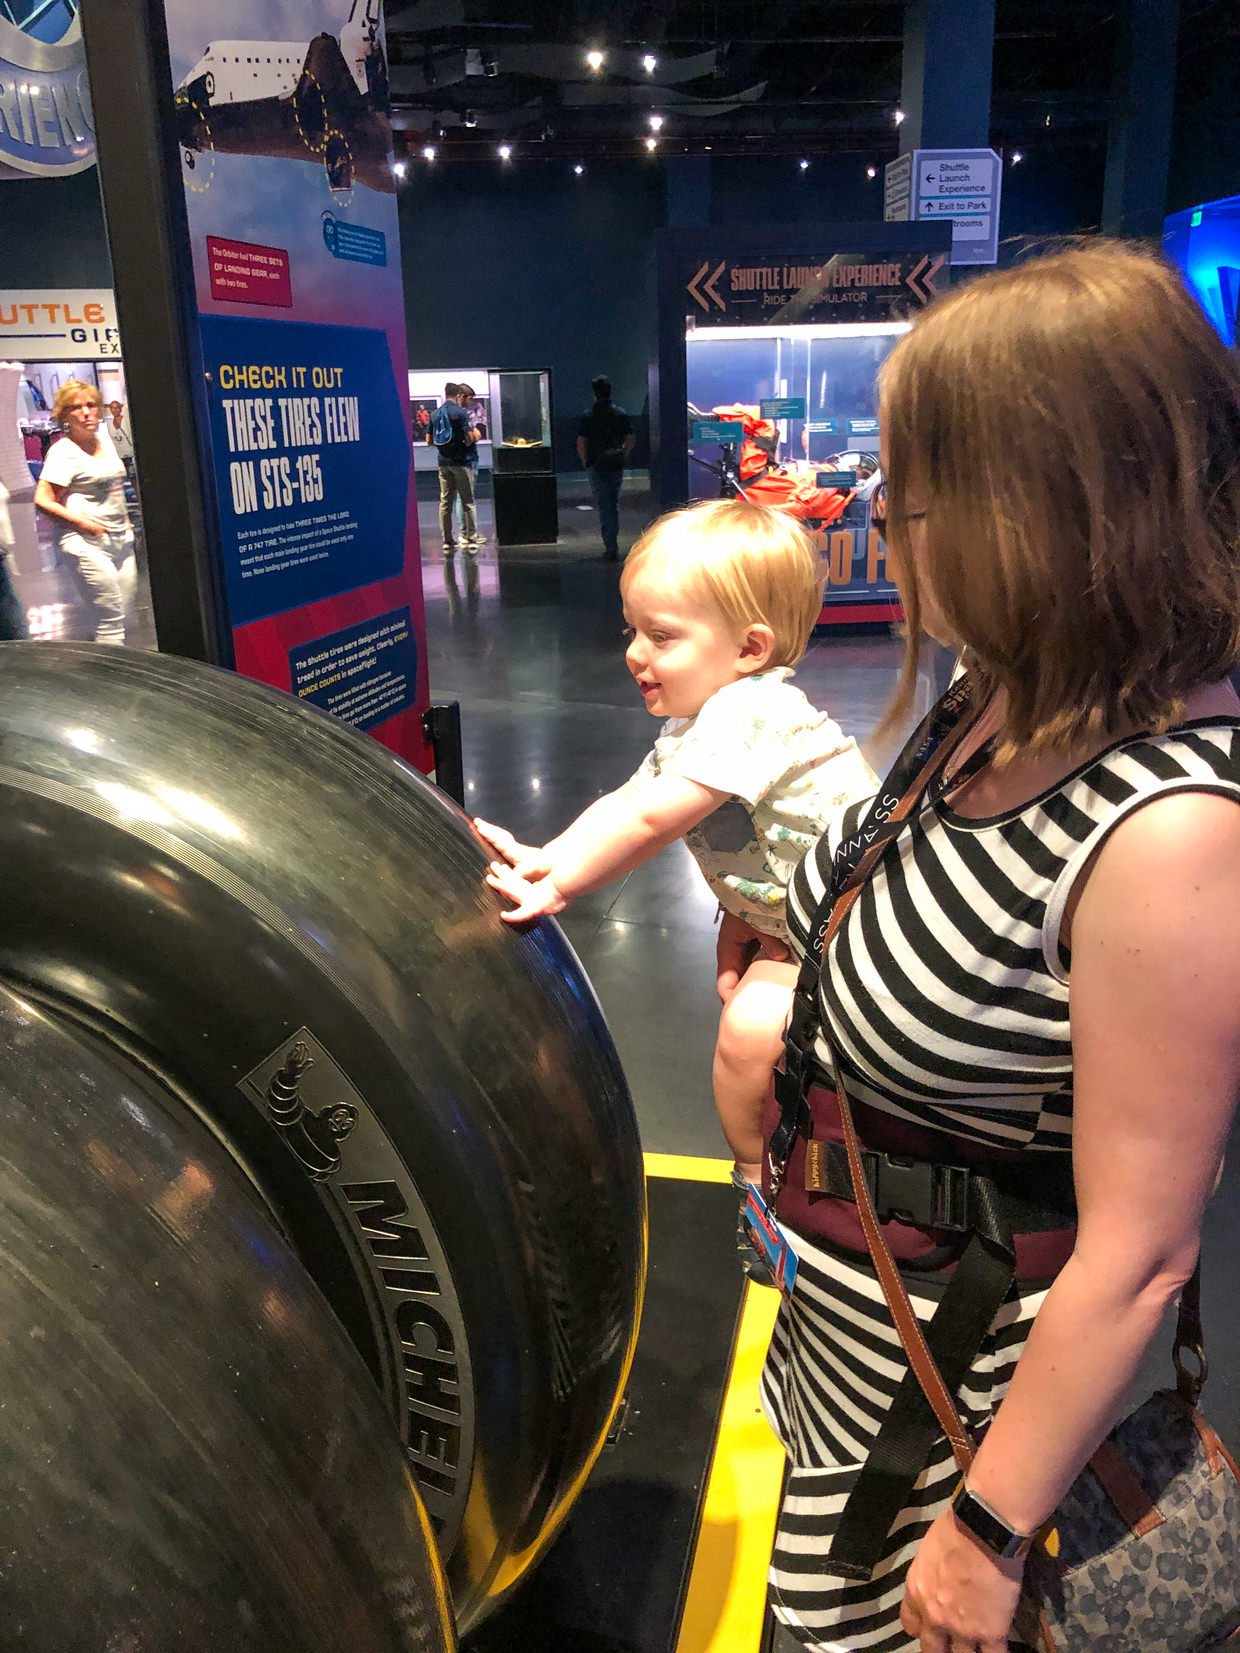 The giant tyres of a space shuttle